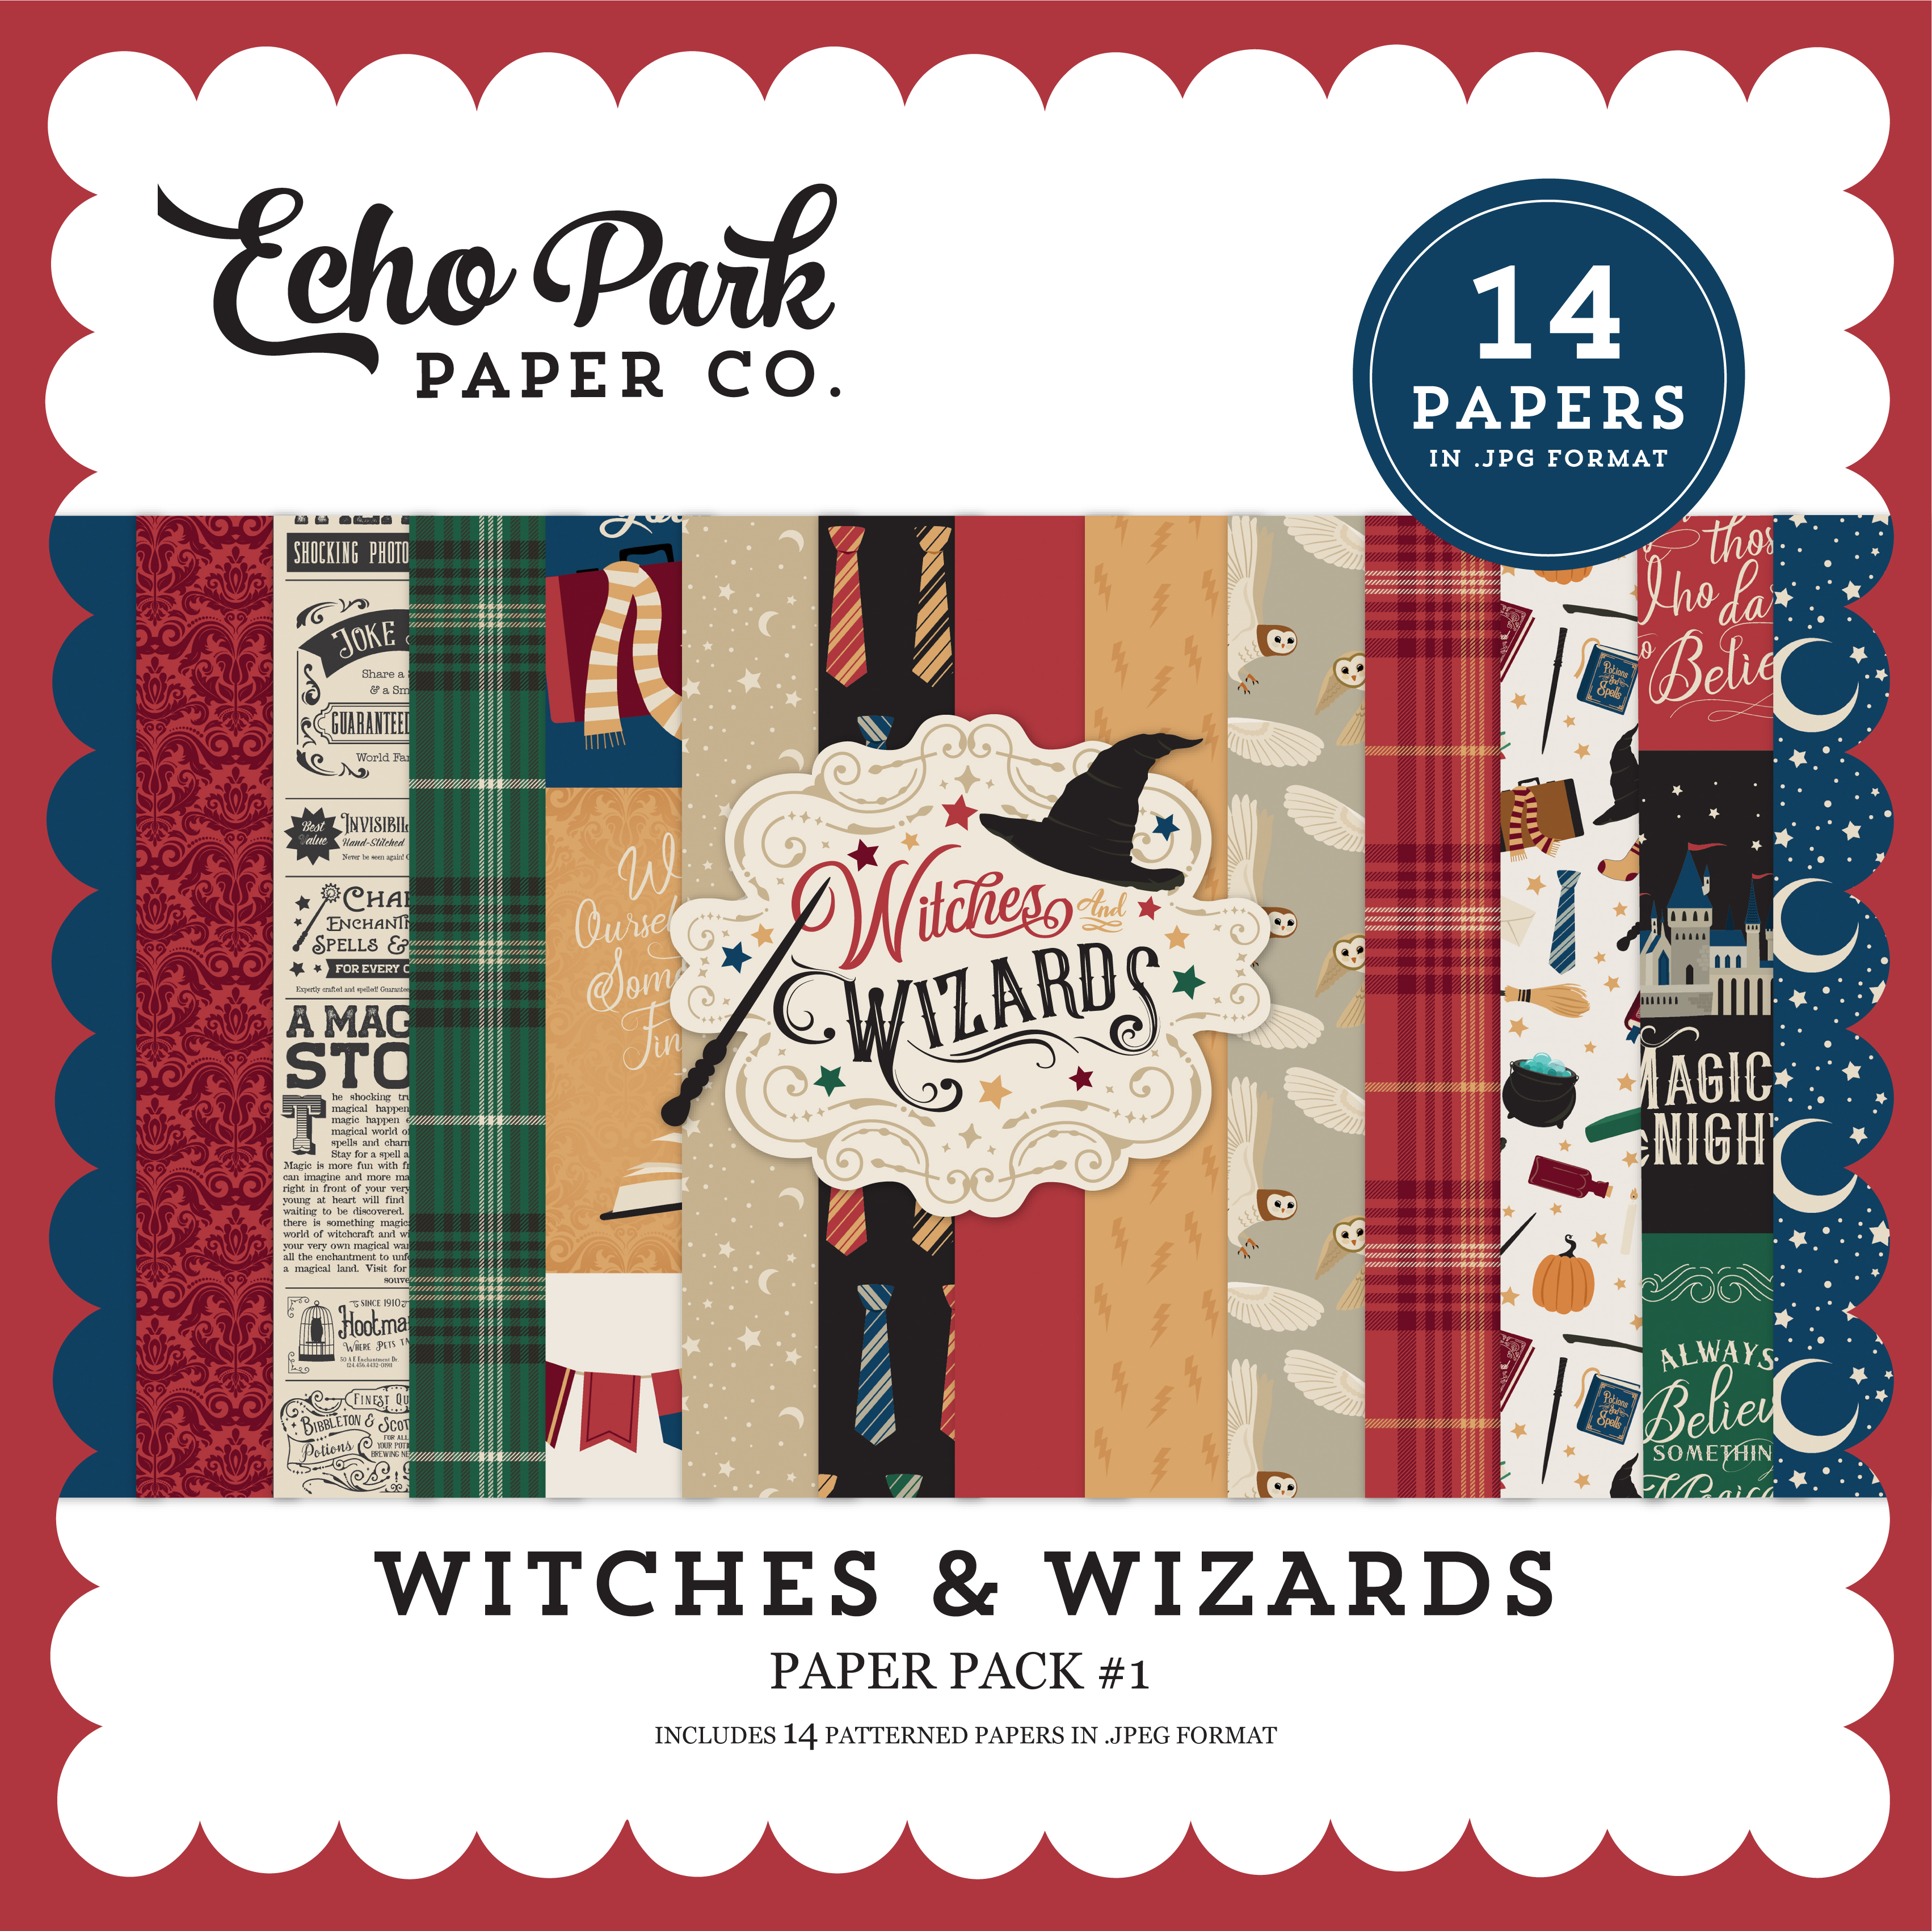 Witches & Wizards Paper Pack #1